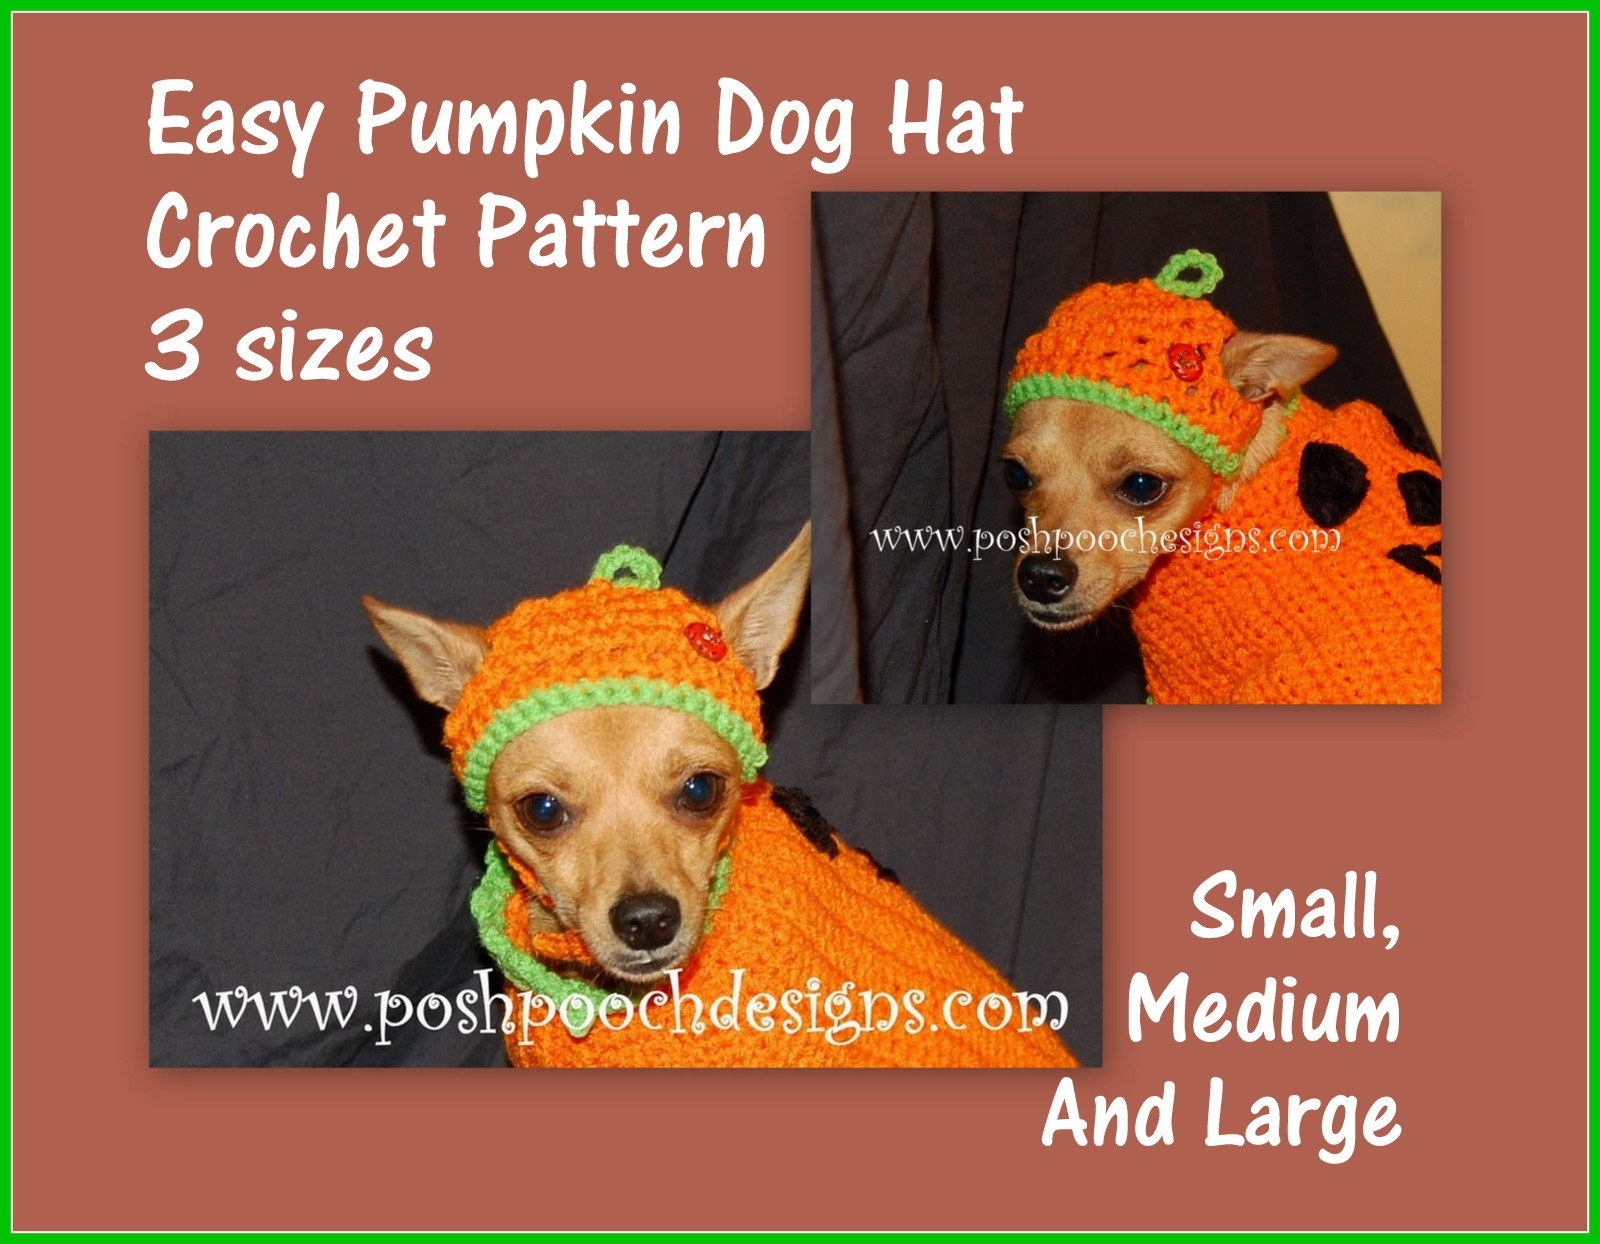 Posh Pooch Designs Dog Clothes  Dog Hat Crochet Patterns For Small ... 279137c7d1f